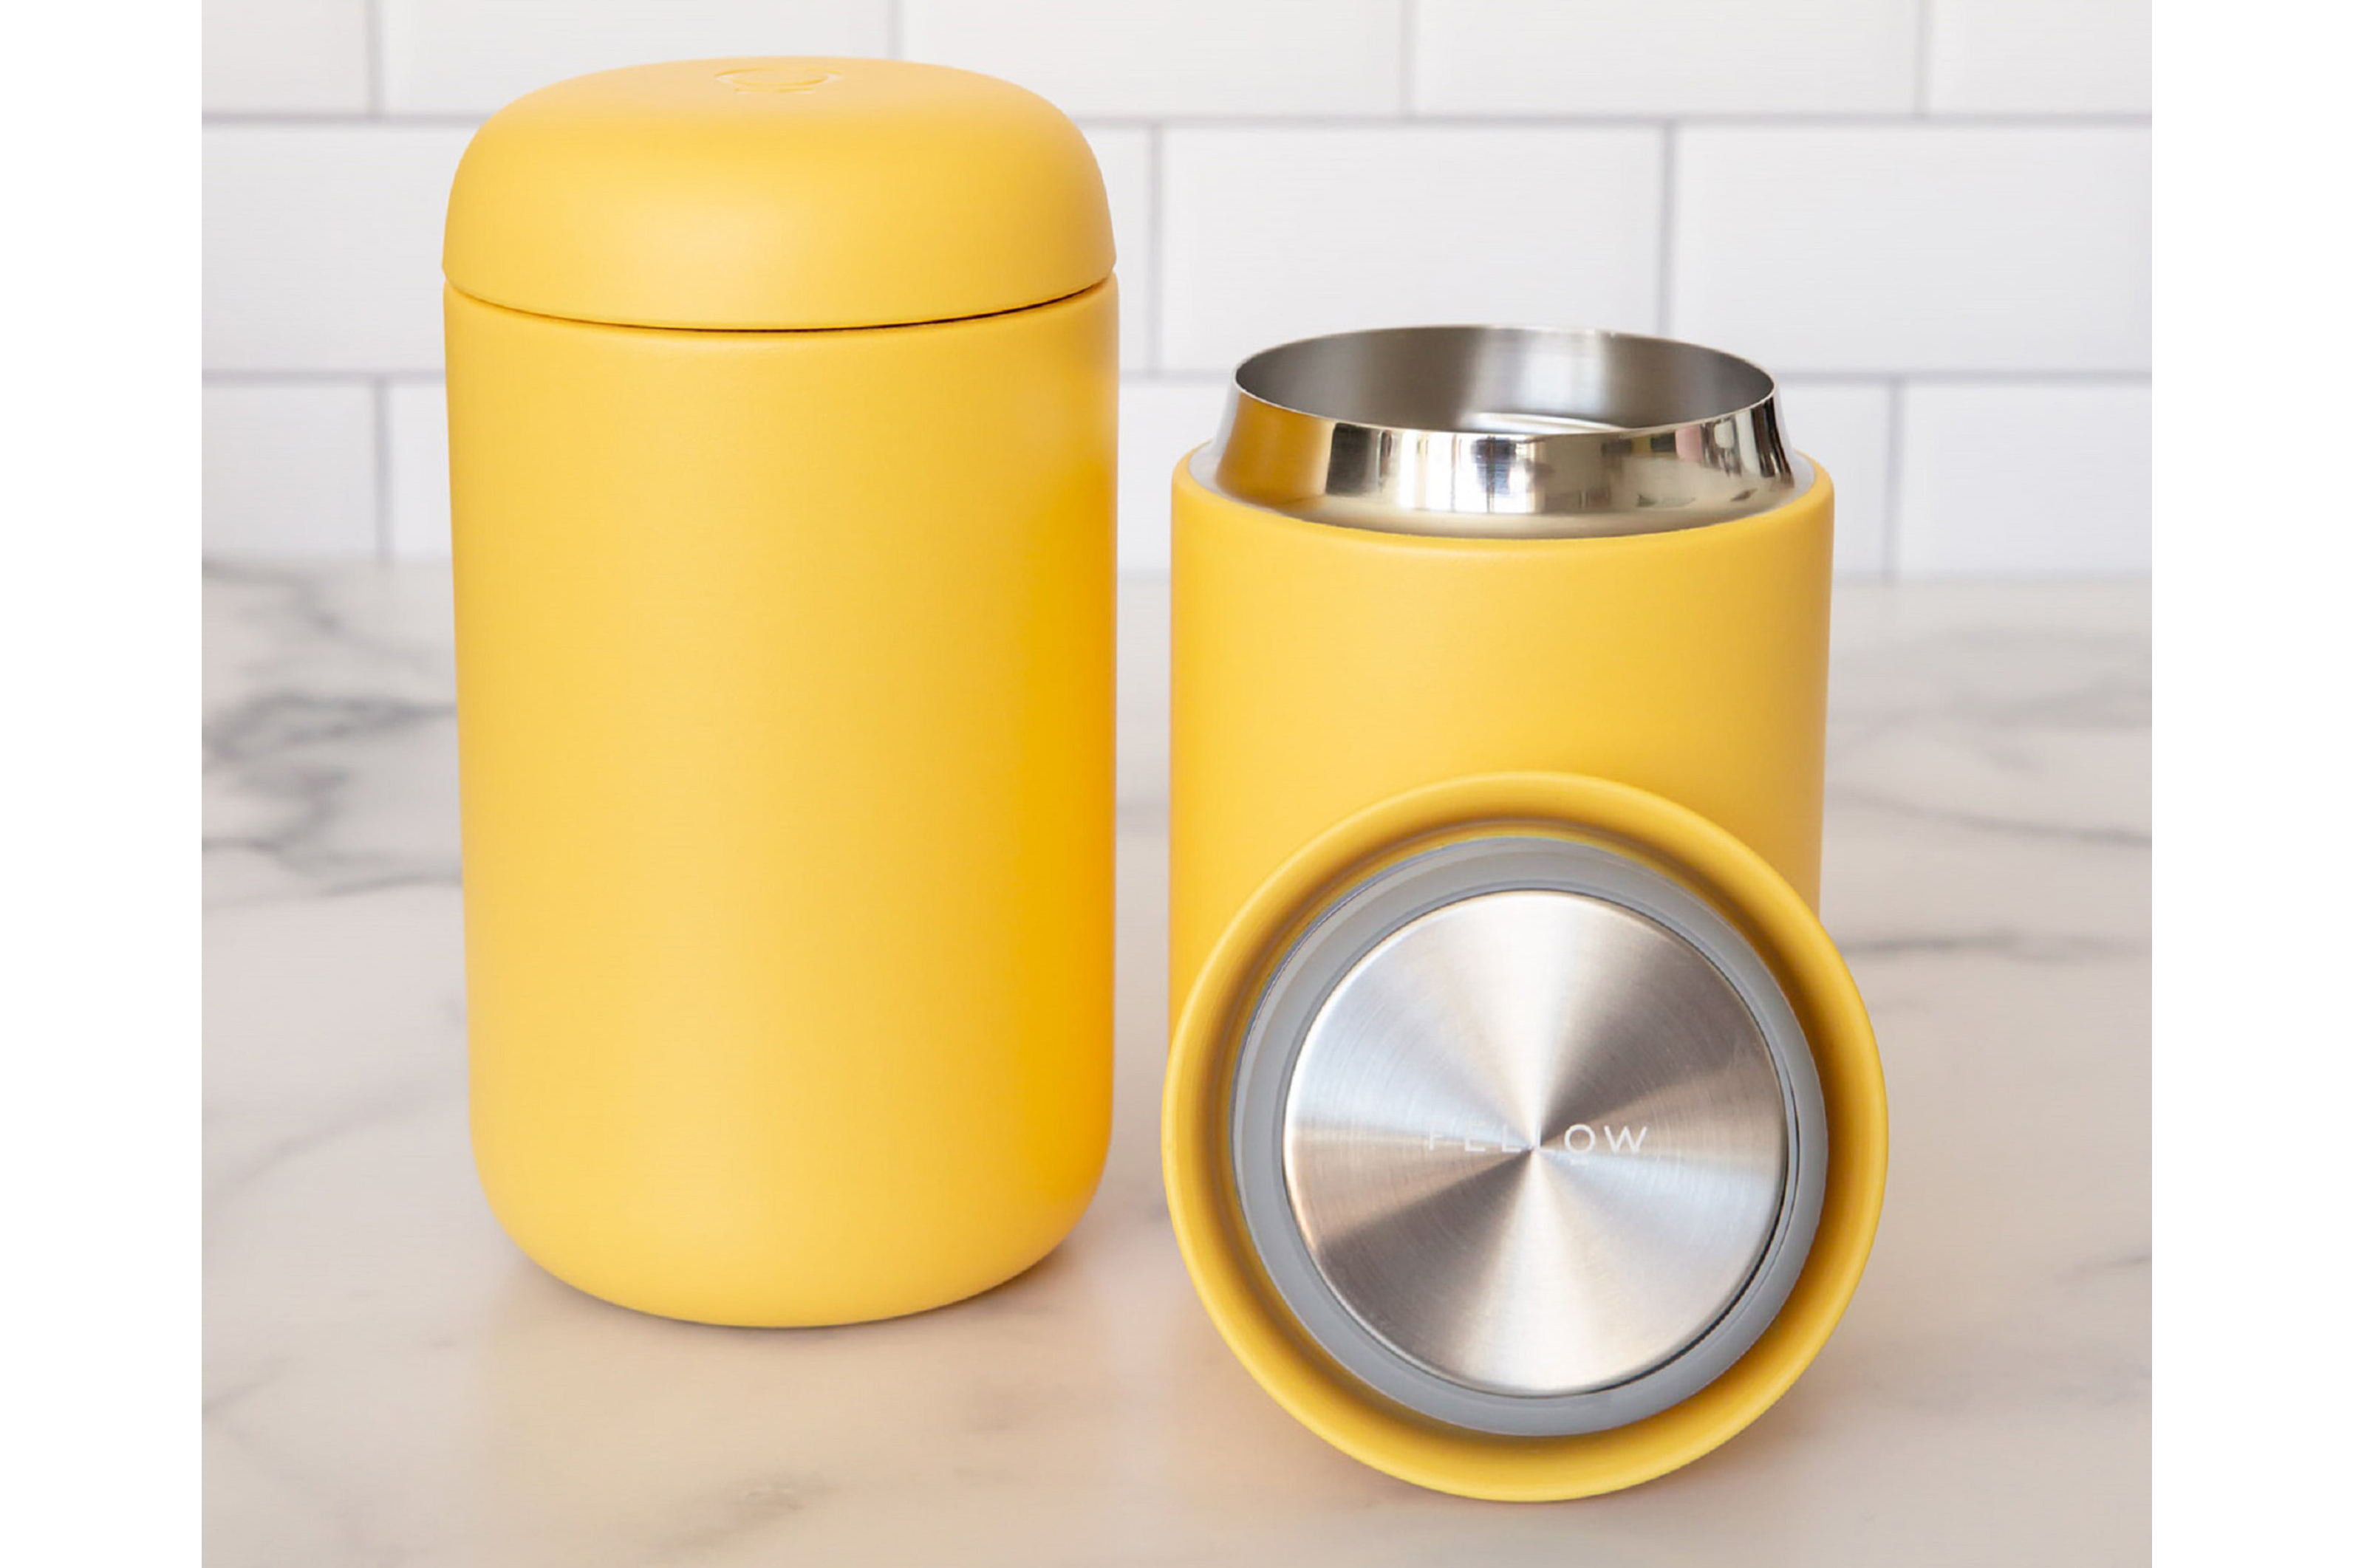 yellow Fellow Carter Everywhere Thermal Mug on a marble counter in front of a white subway tile backsplash